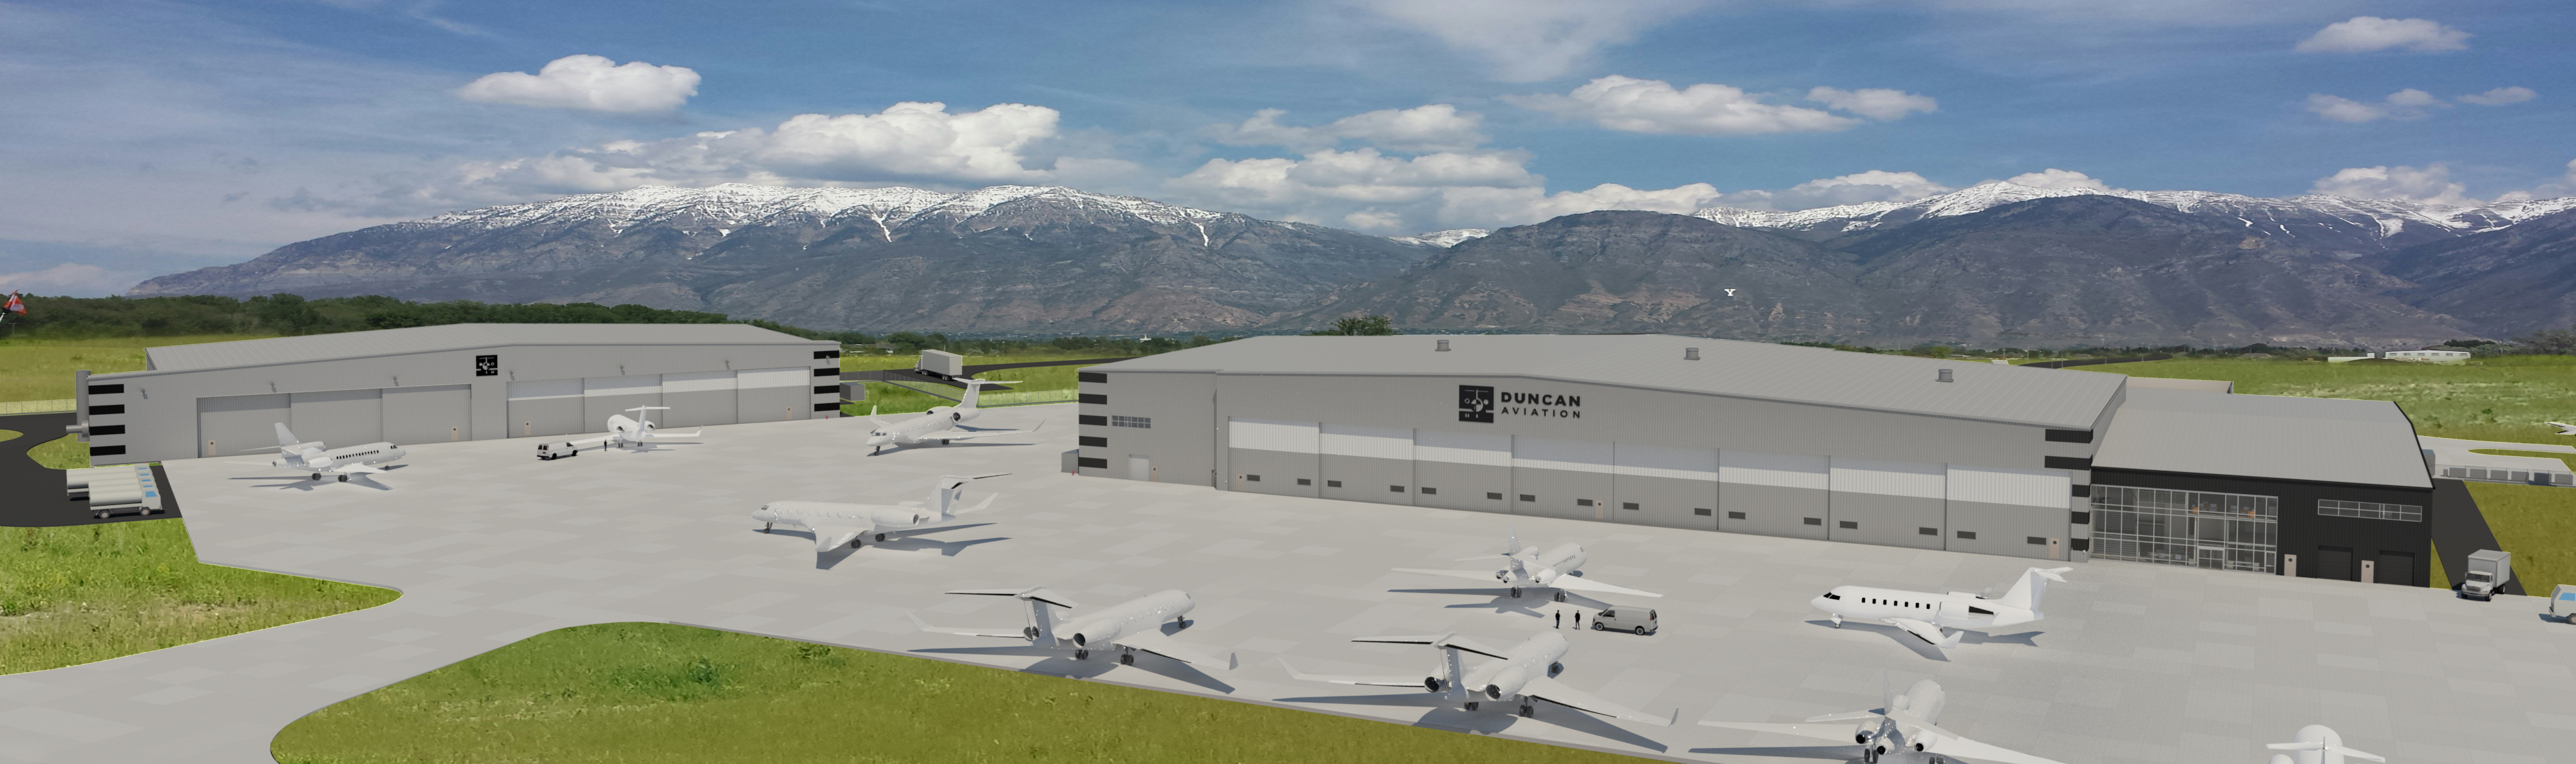 Duncan Aviation Provo, UT Expansion Rendering